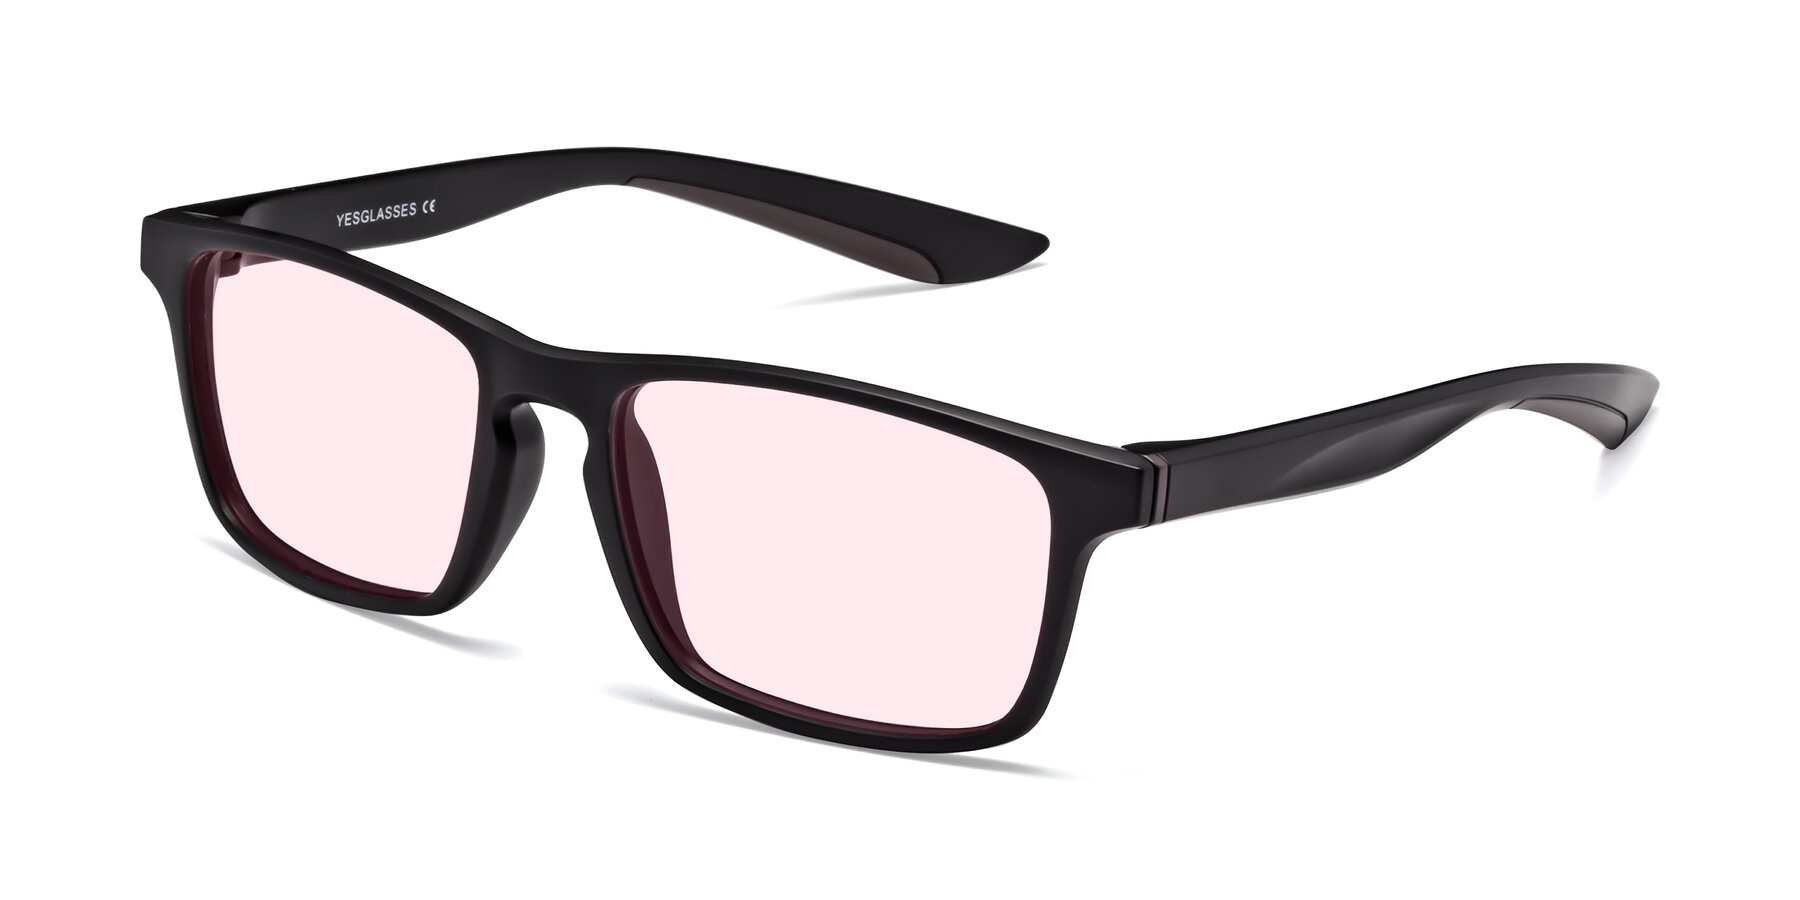 Angle of Passion in Matte Black-Coffee with Light Pink Tinted Lenses